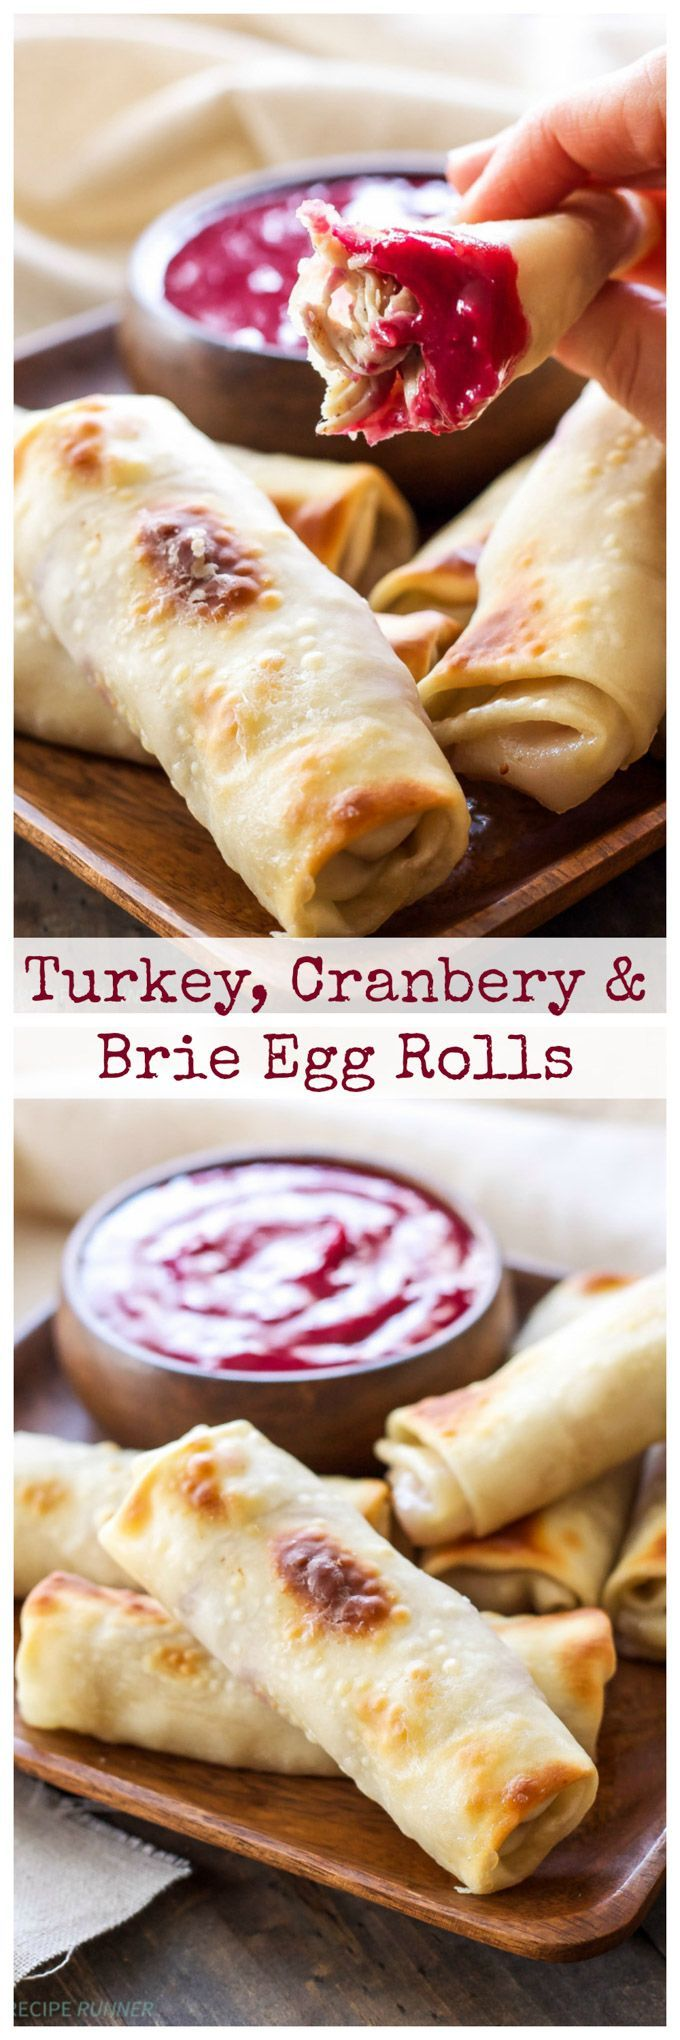 Turkey Cranberry and Brie Egg Rolls | Baked egg rolls stuffed with leftover…